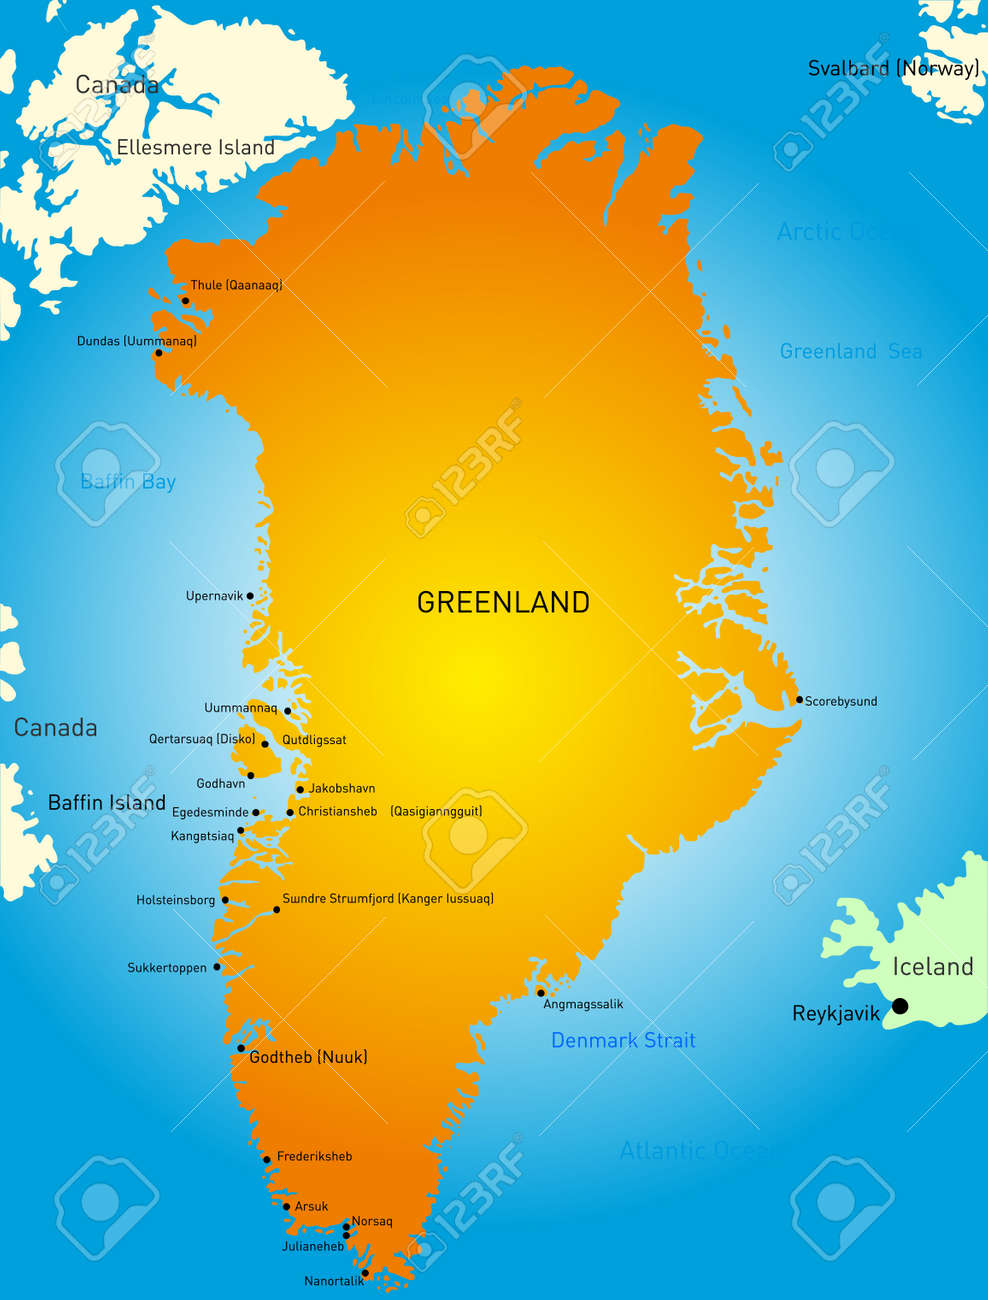 Detailed Map Of Greenland Map Royalty Free Cliparts Vectors And - Greenland map